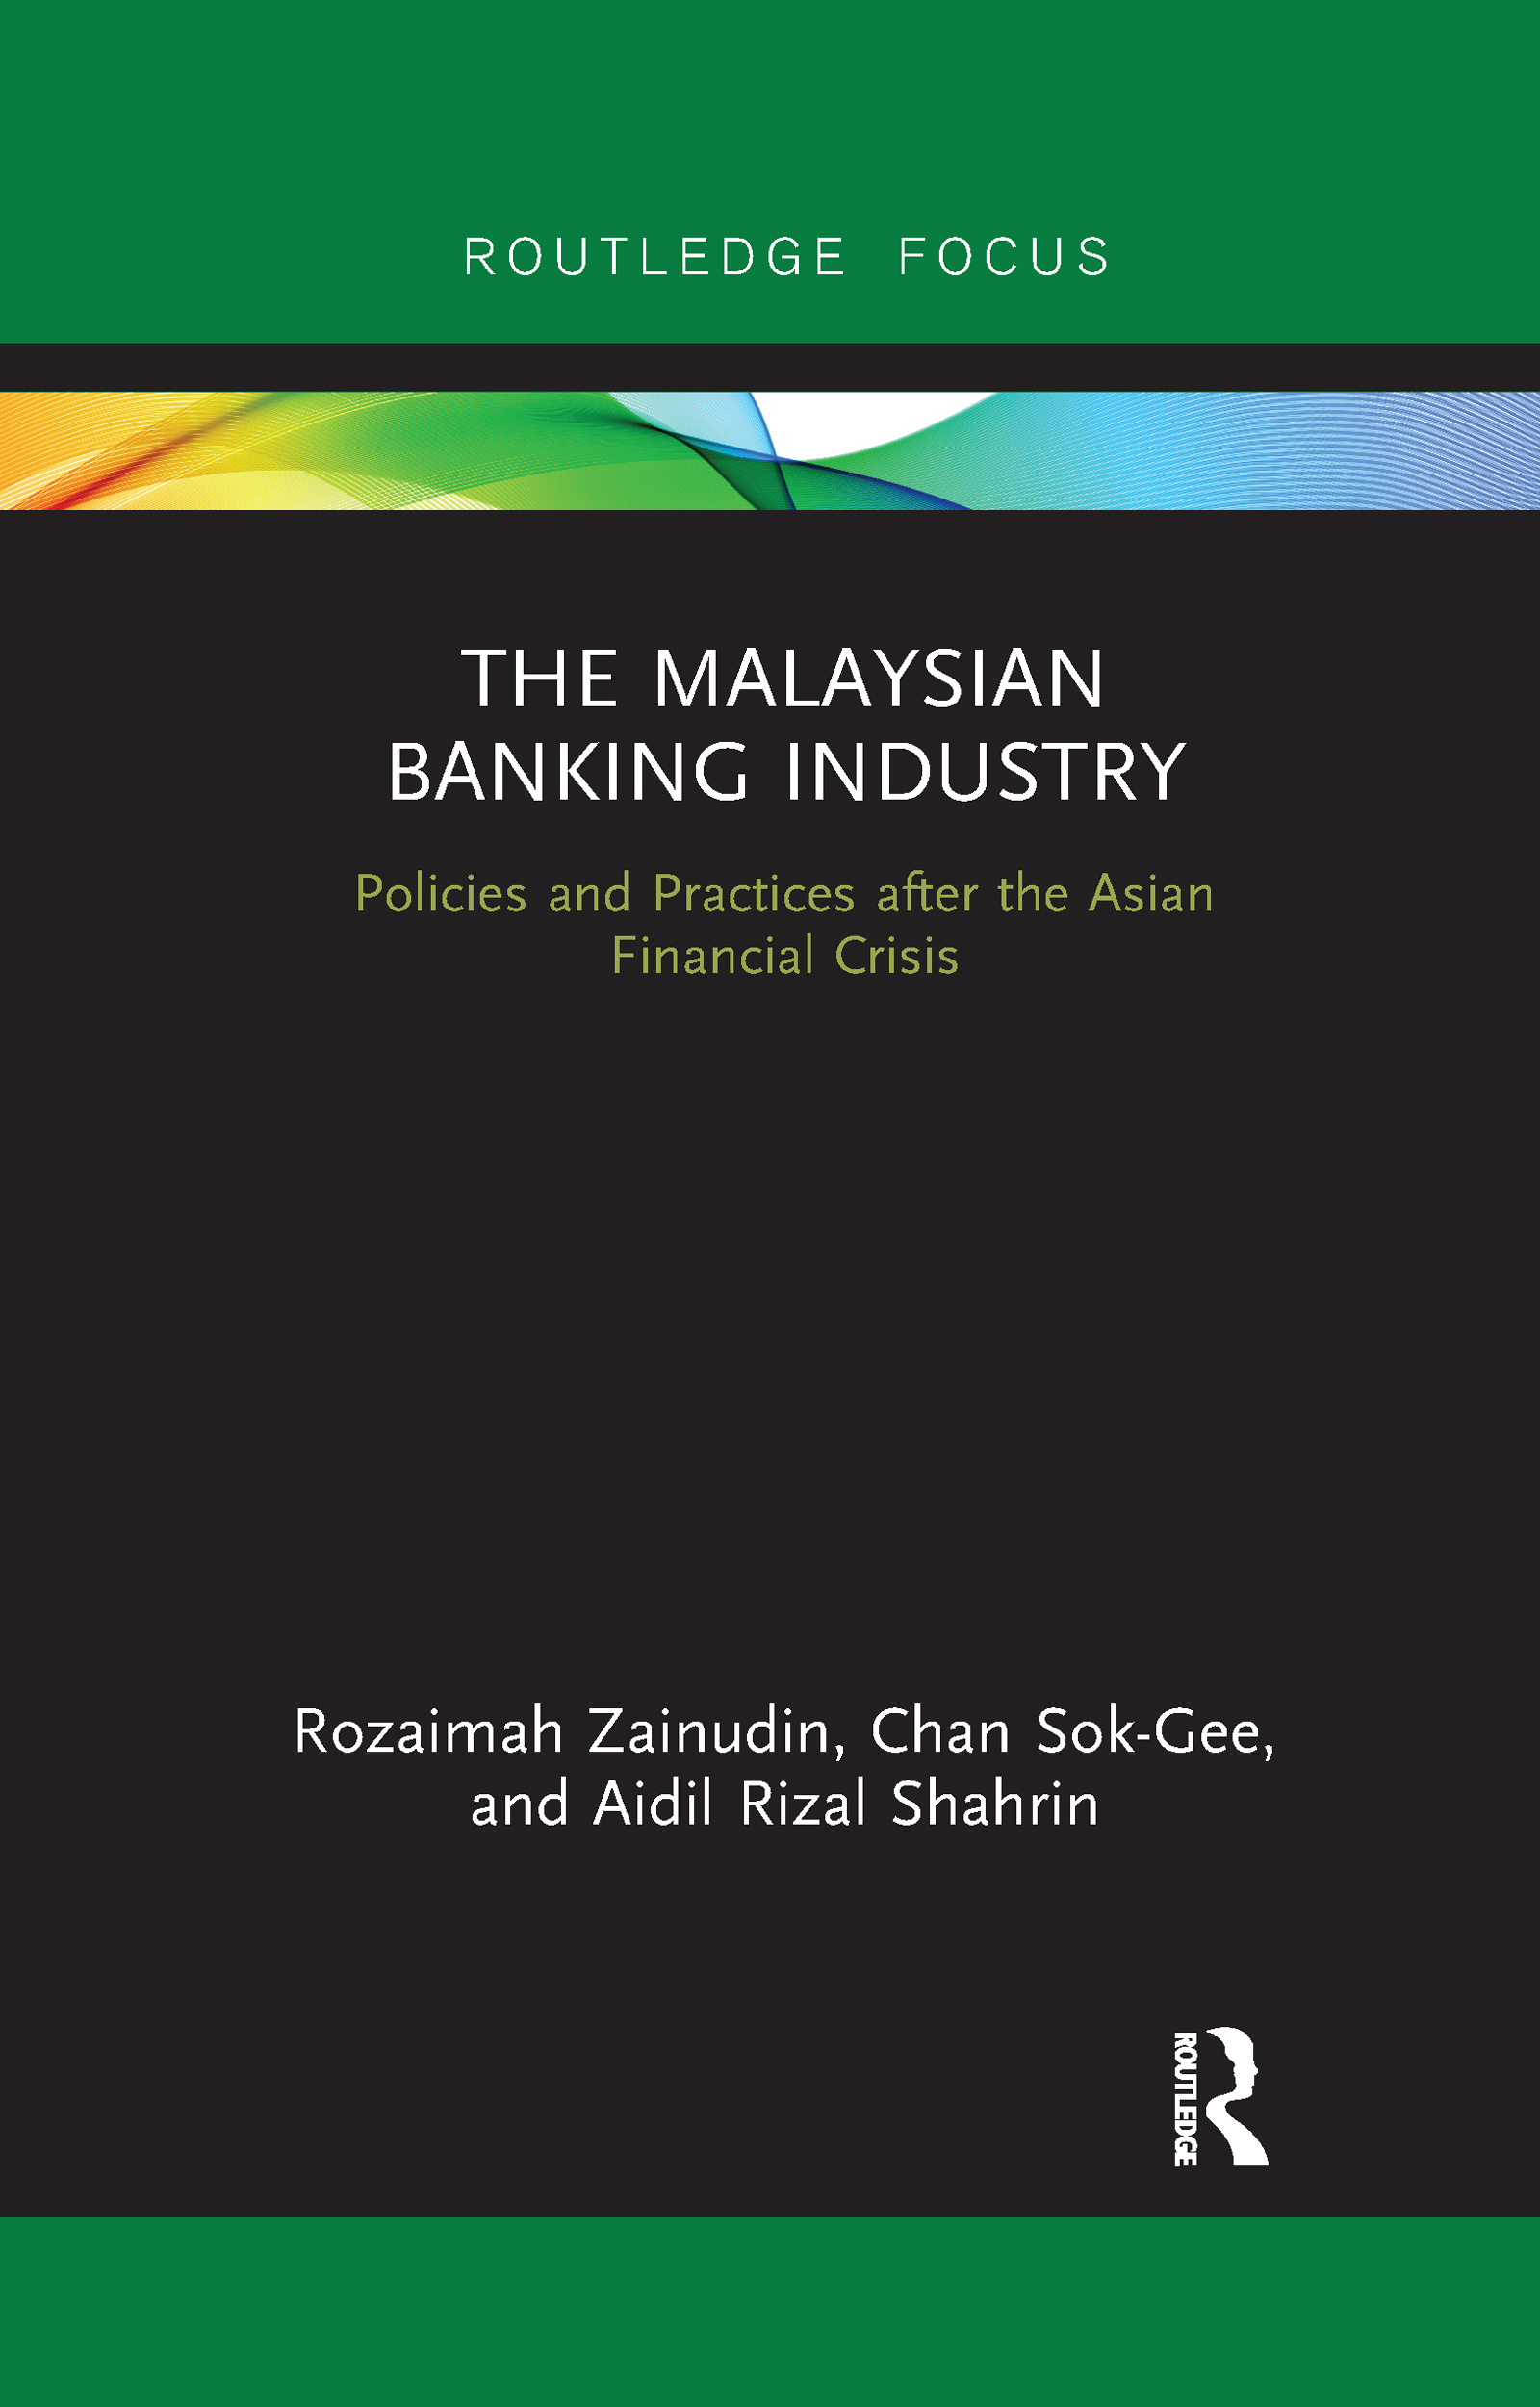 The Malaysian Banking Industry